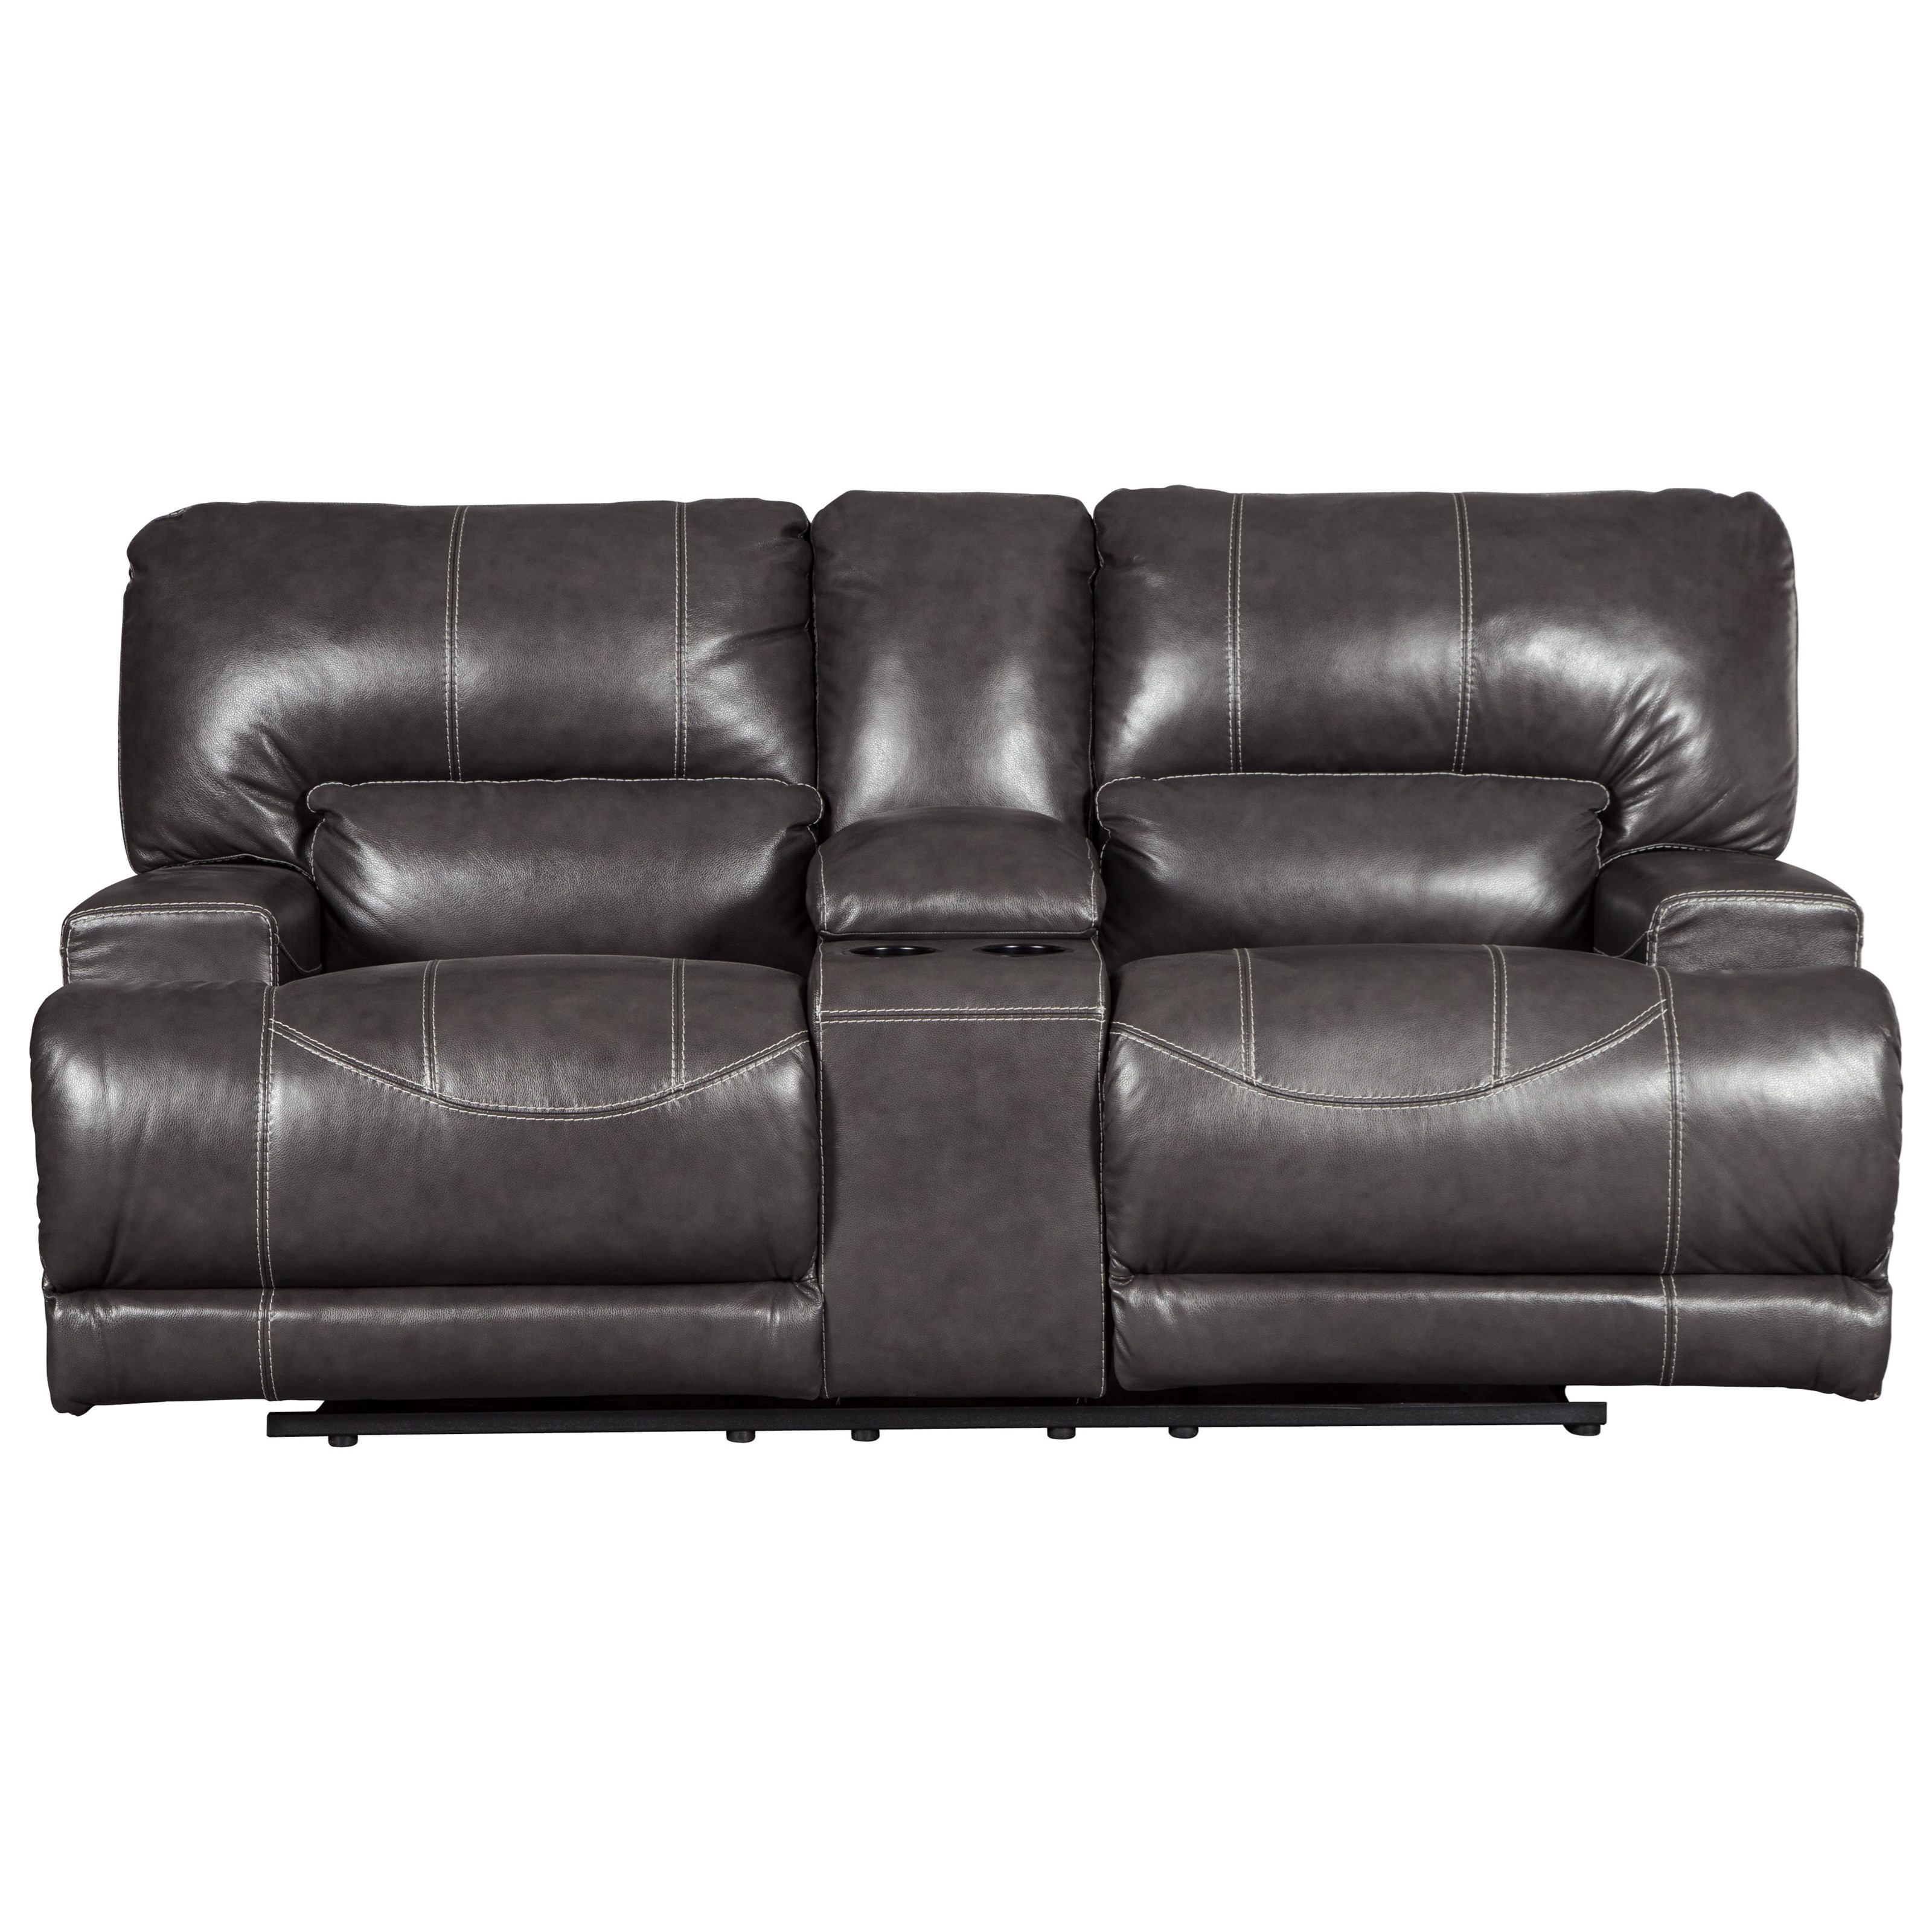 McCaskill Double Reclining Power Loveseat w/ Console by Ashley (Signature Design) at Johnny Janosik